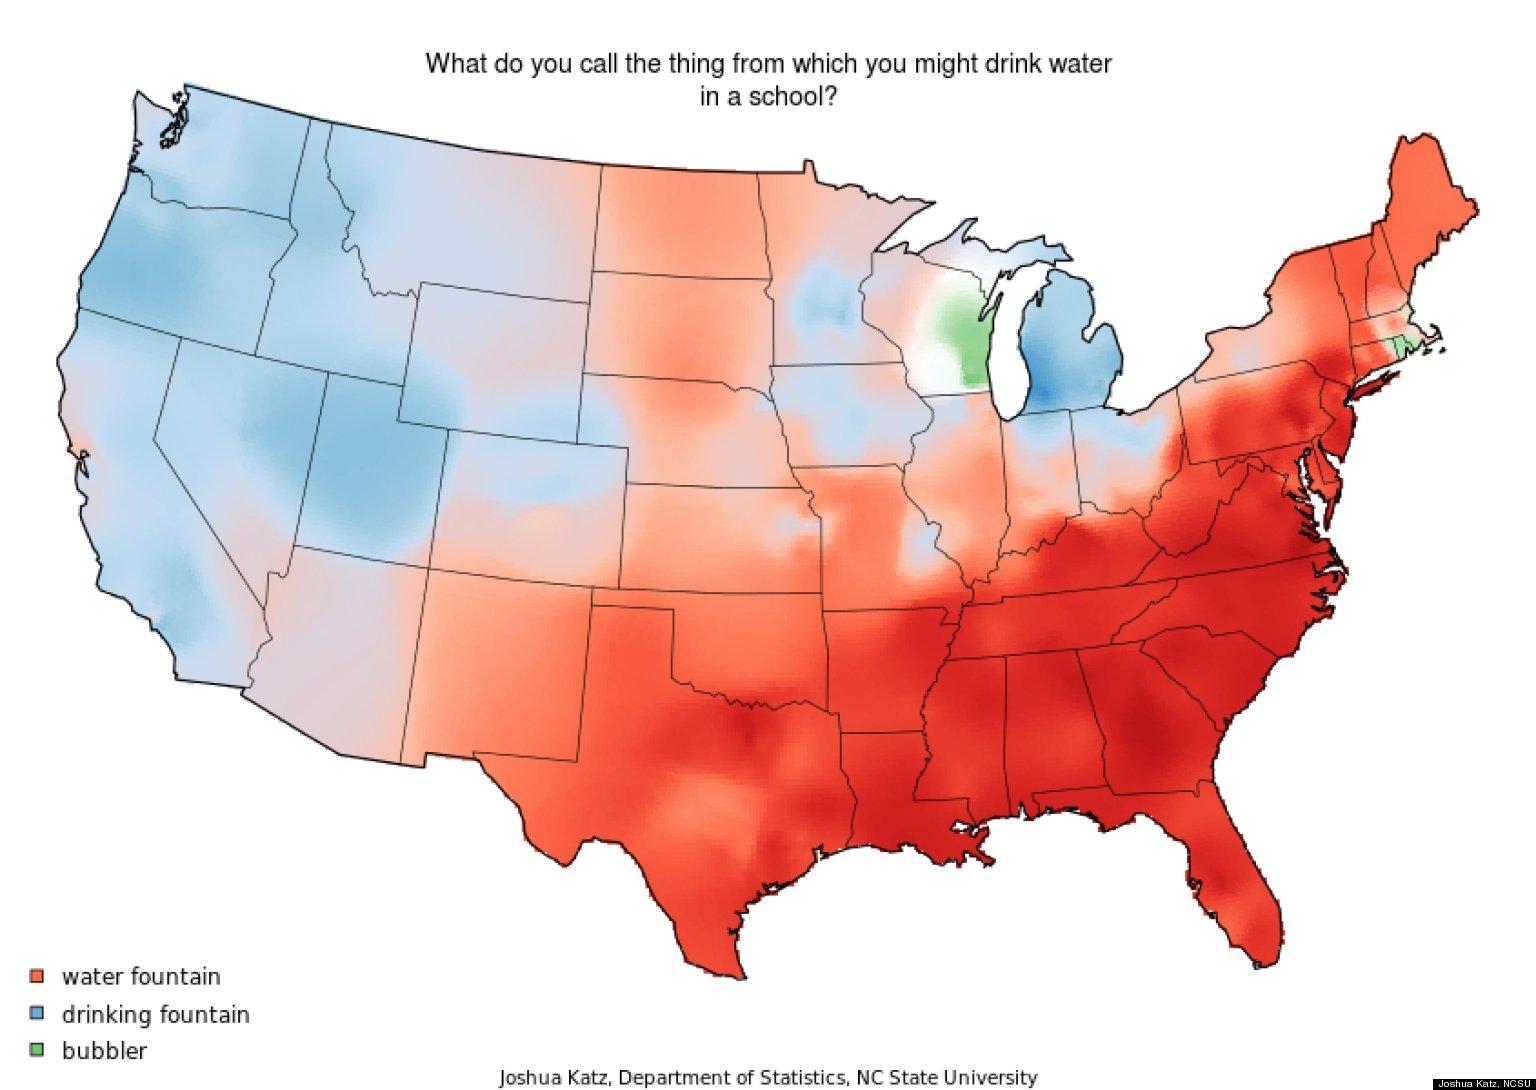 pecan pronunciation map with Pop Vs Soda Map on Pop Vs Soda Map likewise Dialect Maps Americans Speak Differently Country moreover How Do You Say Pecan Mapping Food Dialect Trends Across The U S furthermore How Do You Say Pecan Mapping Food Dialect Trends Across The U S likewise 49494115.